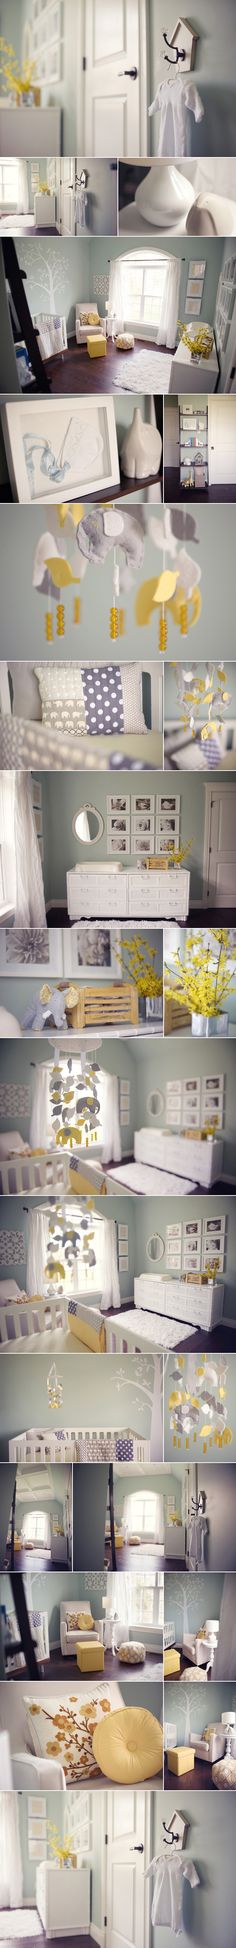 Cute Nursery--good color walls